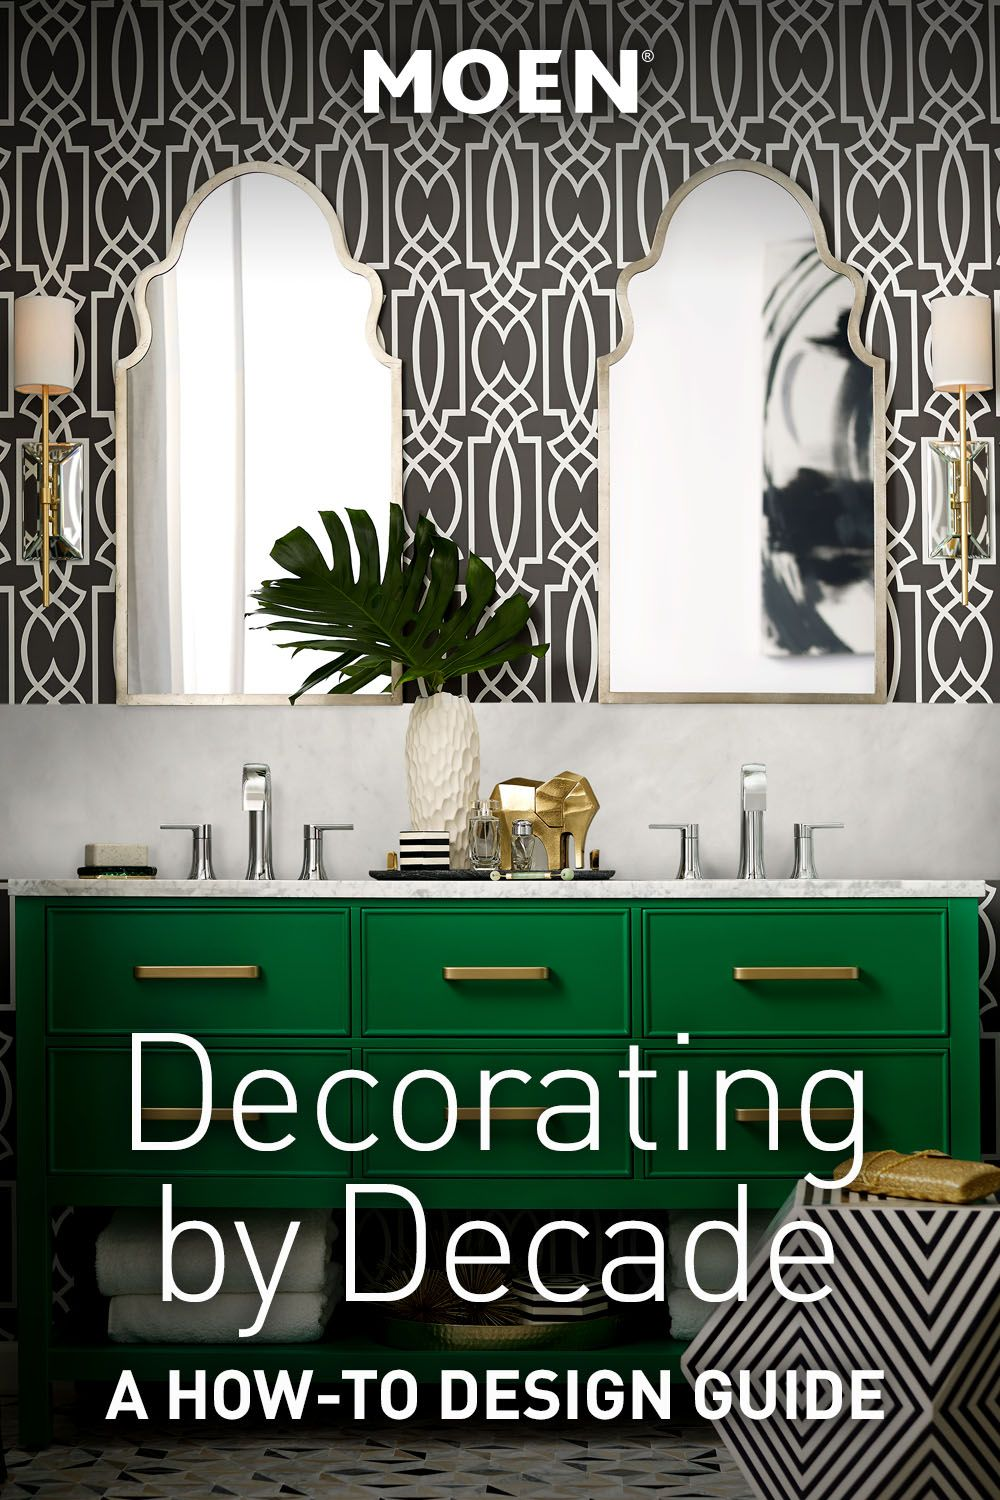 Modern Decor Is Influenced By Different Design Eras Embrace A